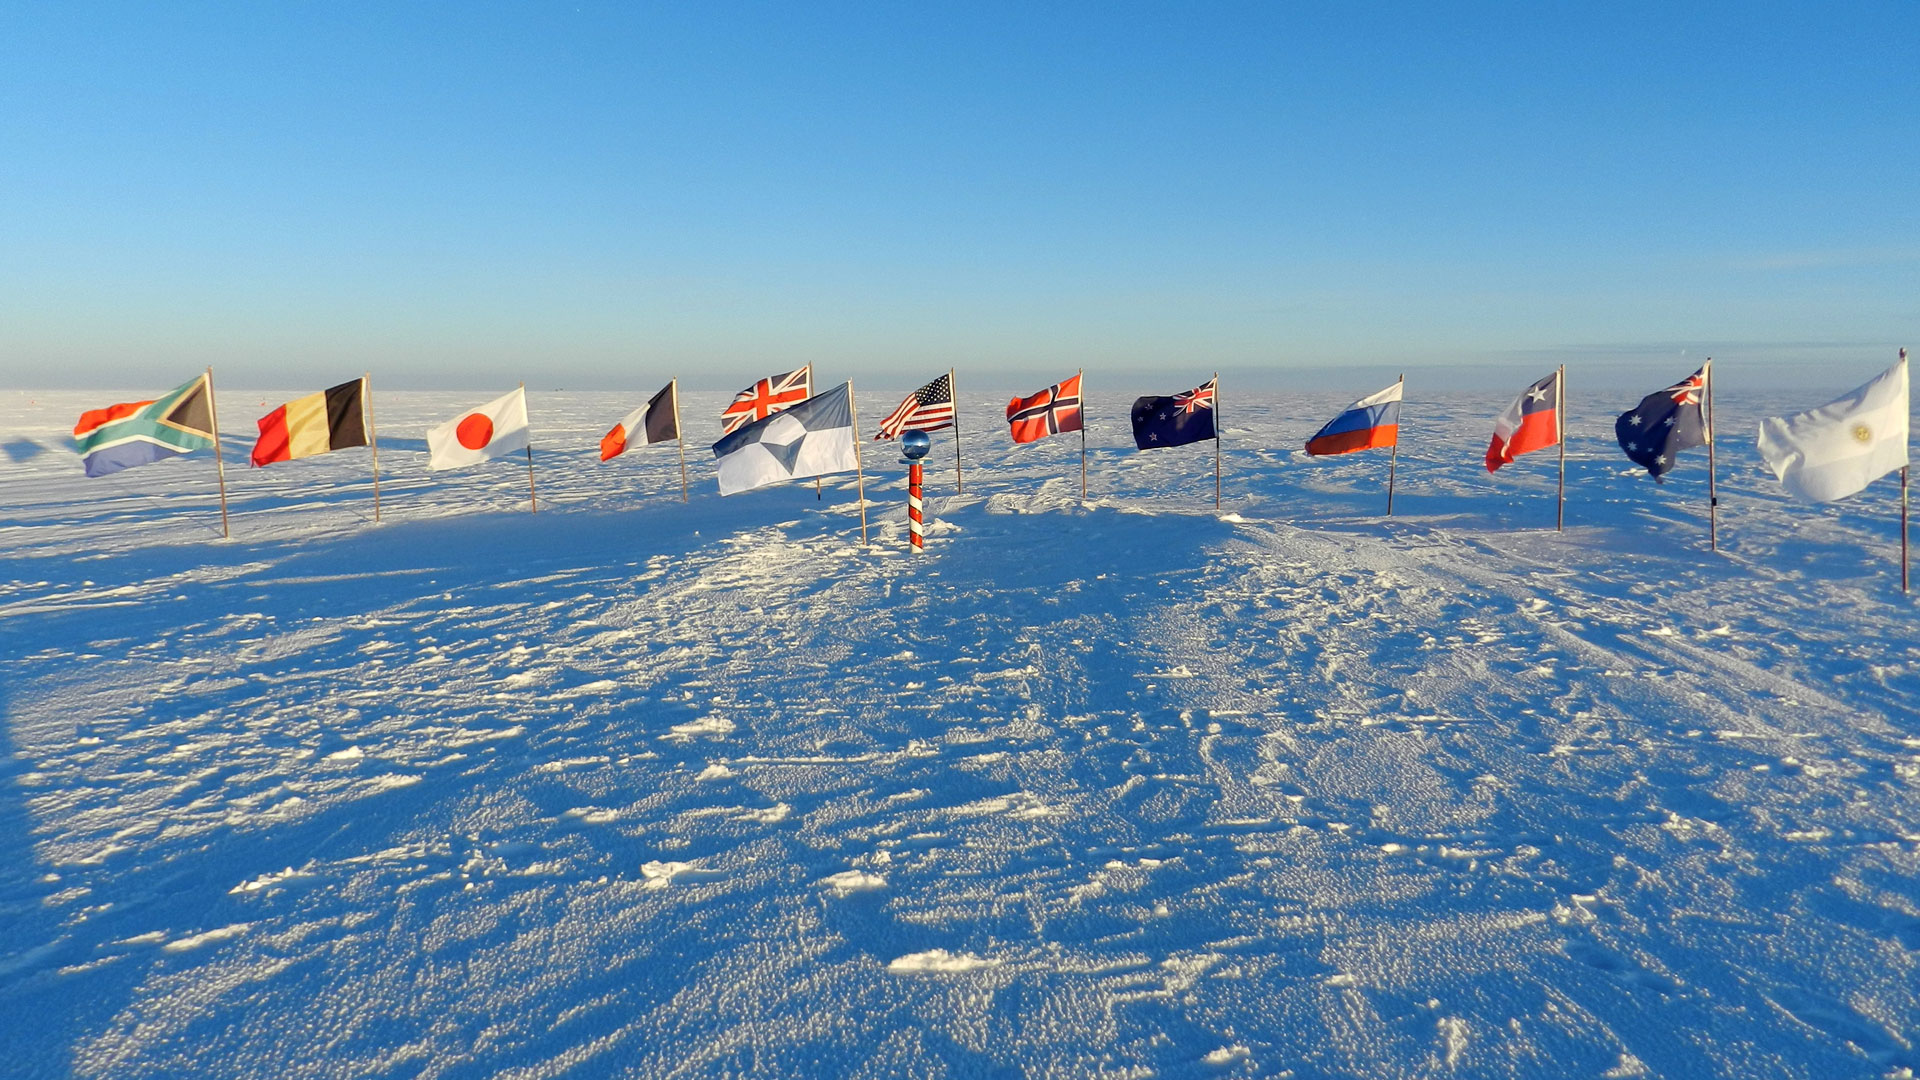 This flag has been designed to represent and protect Antarctica